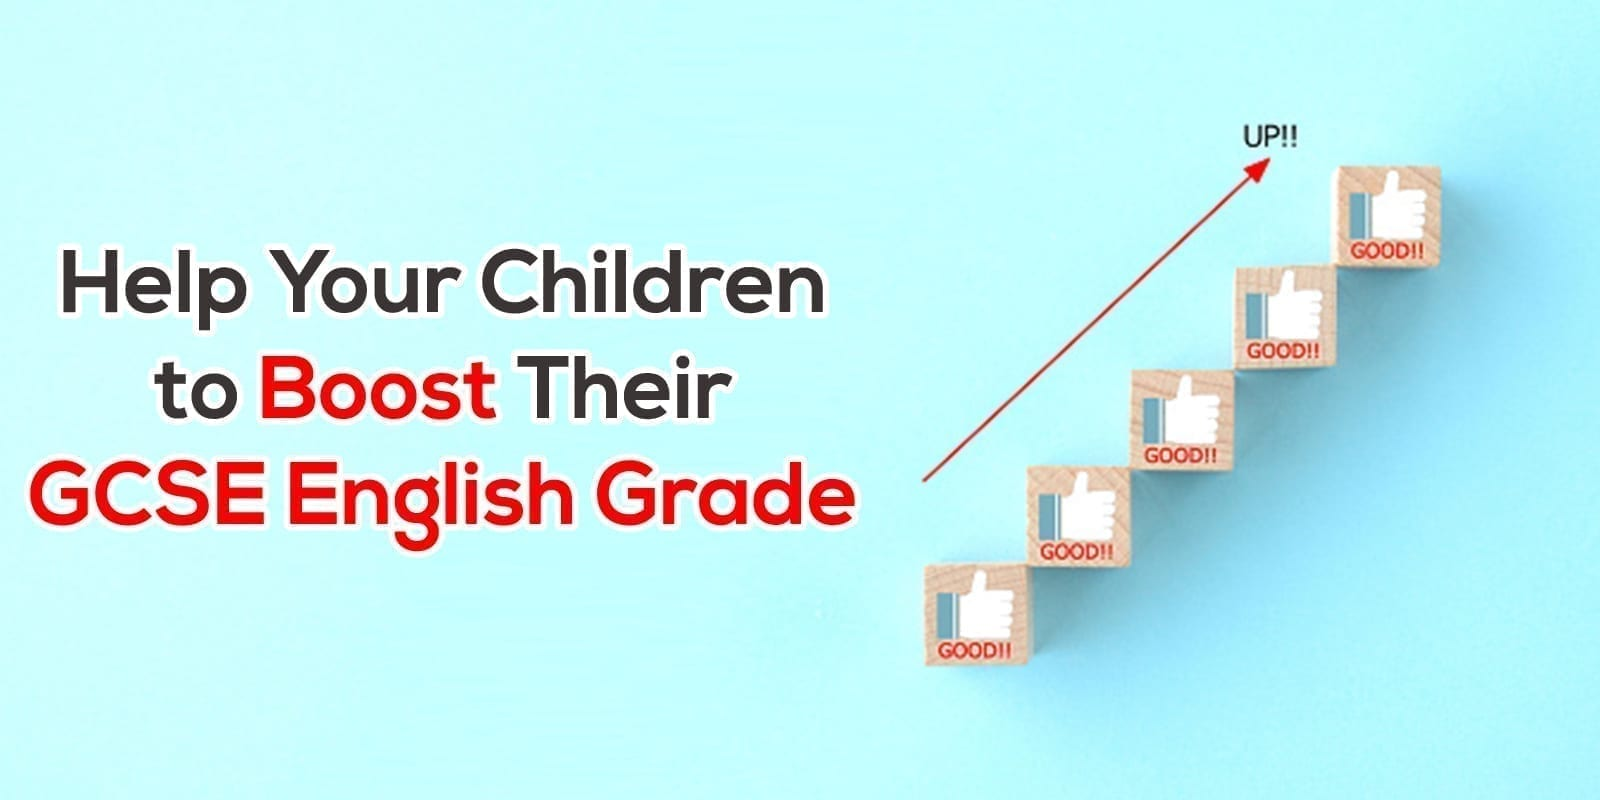 How To Help Your Children Boost Their GCSE English Grade